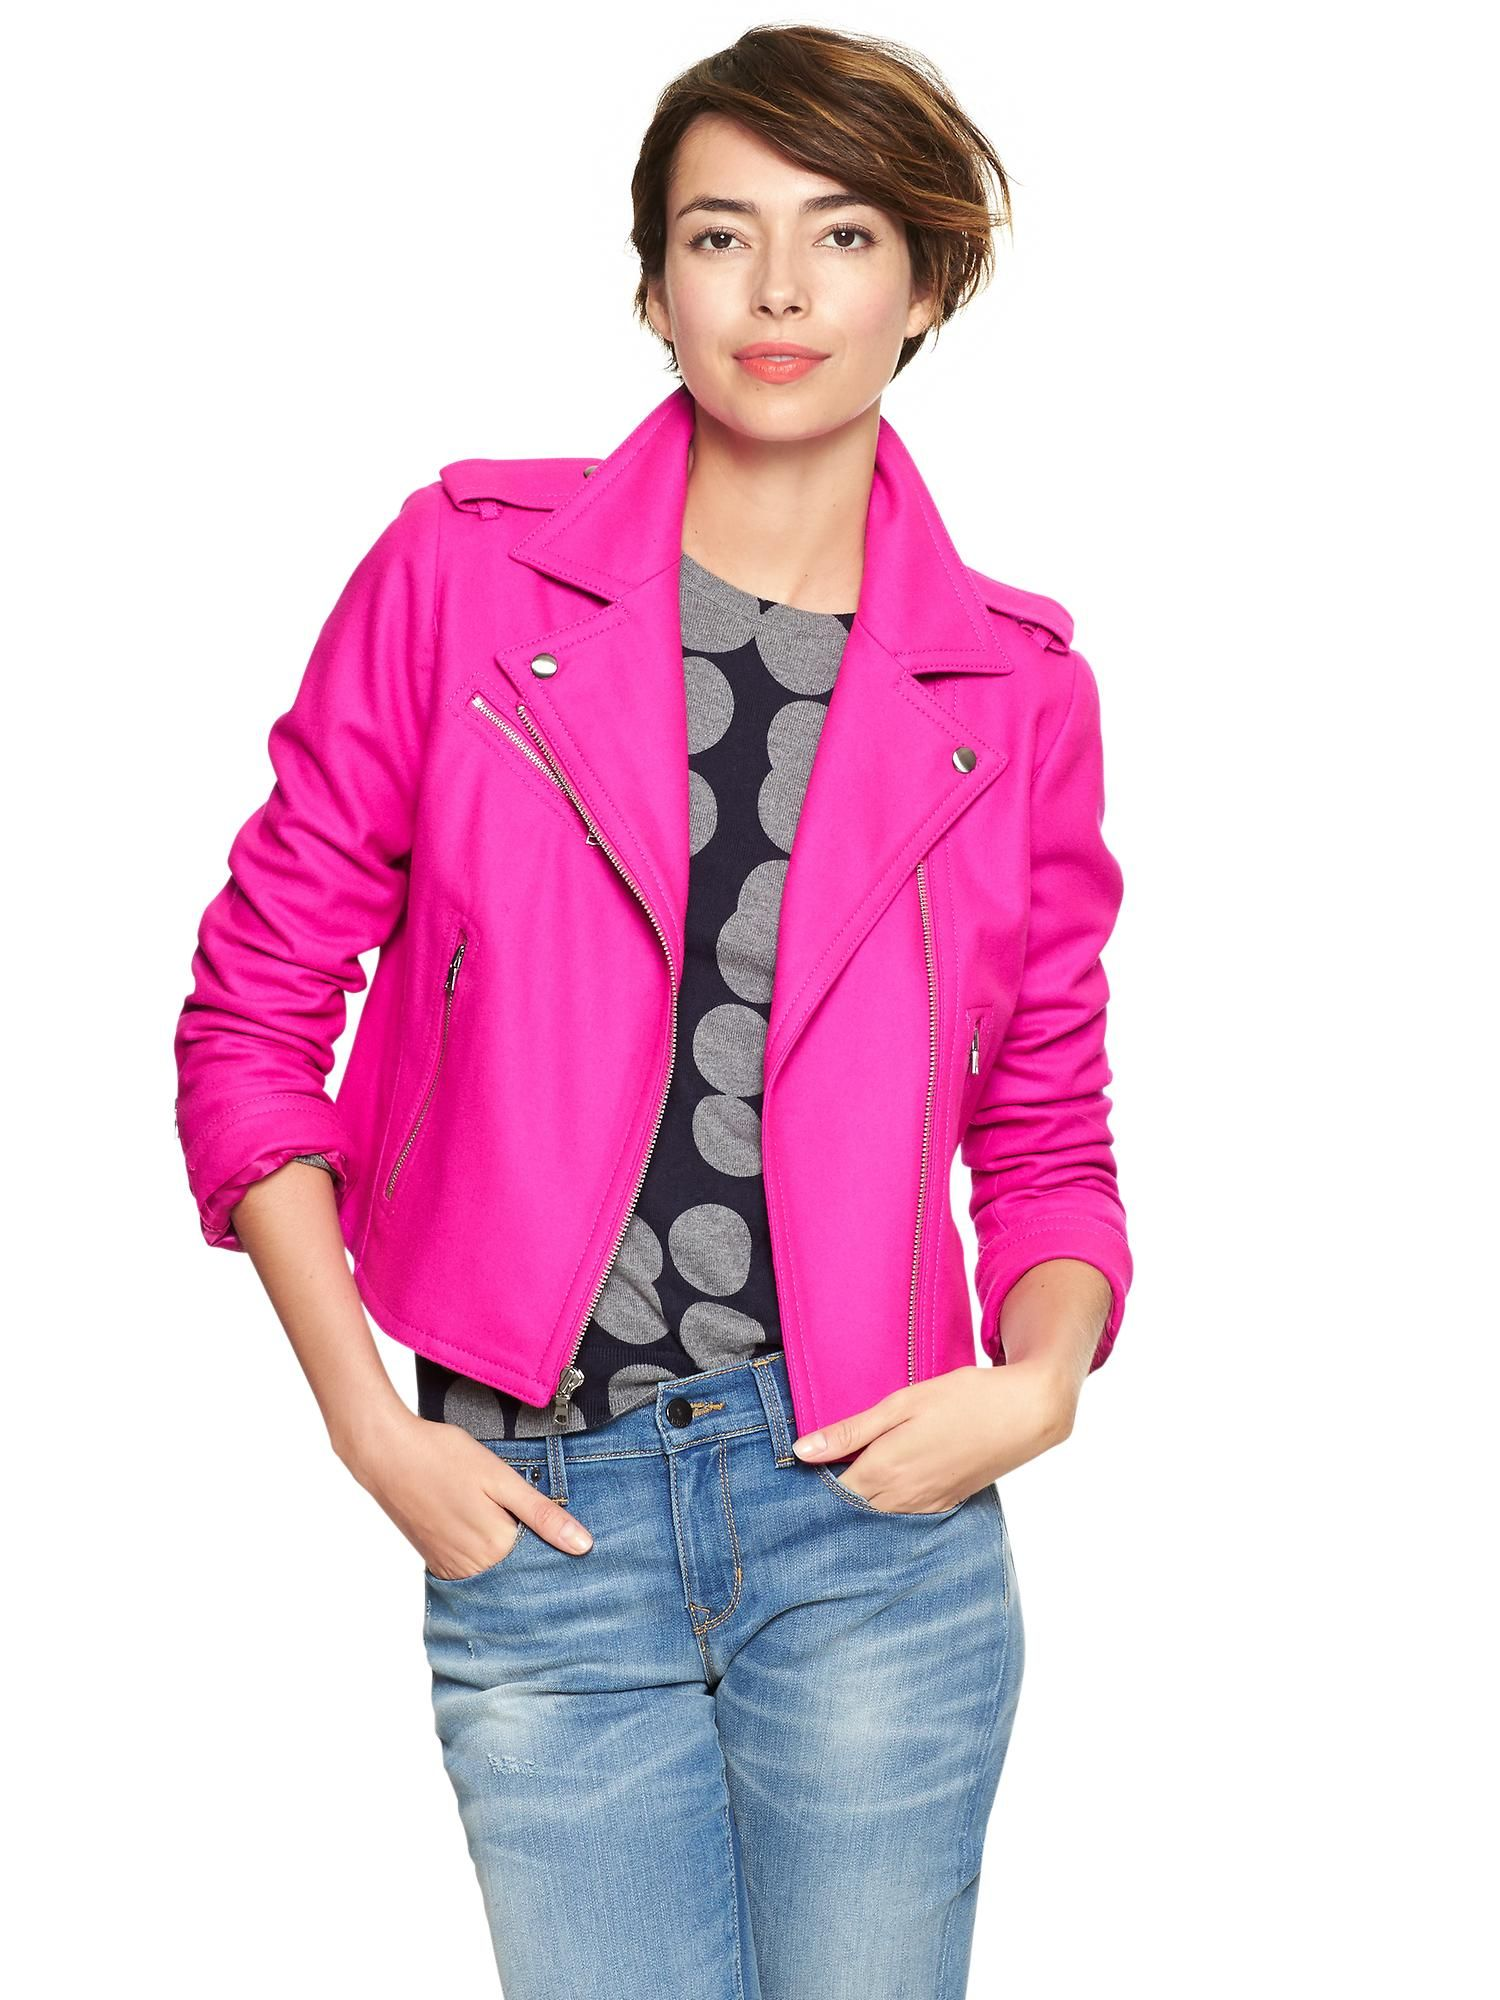 Pin by Elise Miko on Brrrr Pink moto jacket, Coats